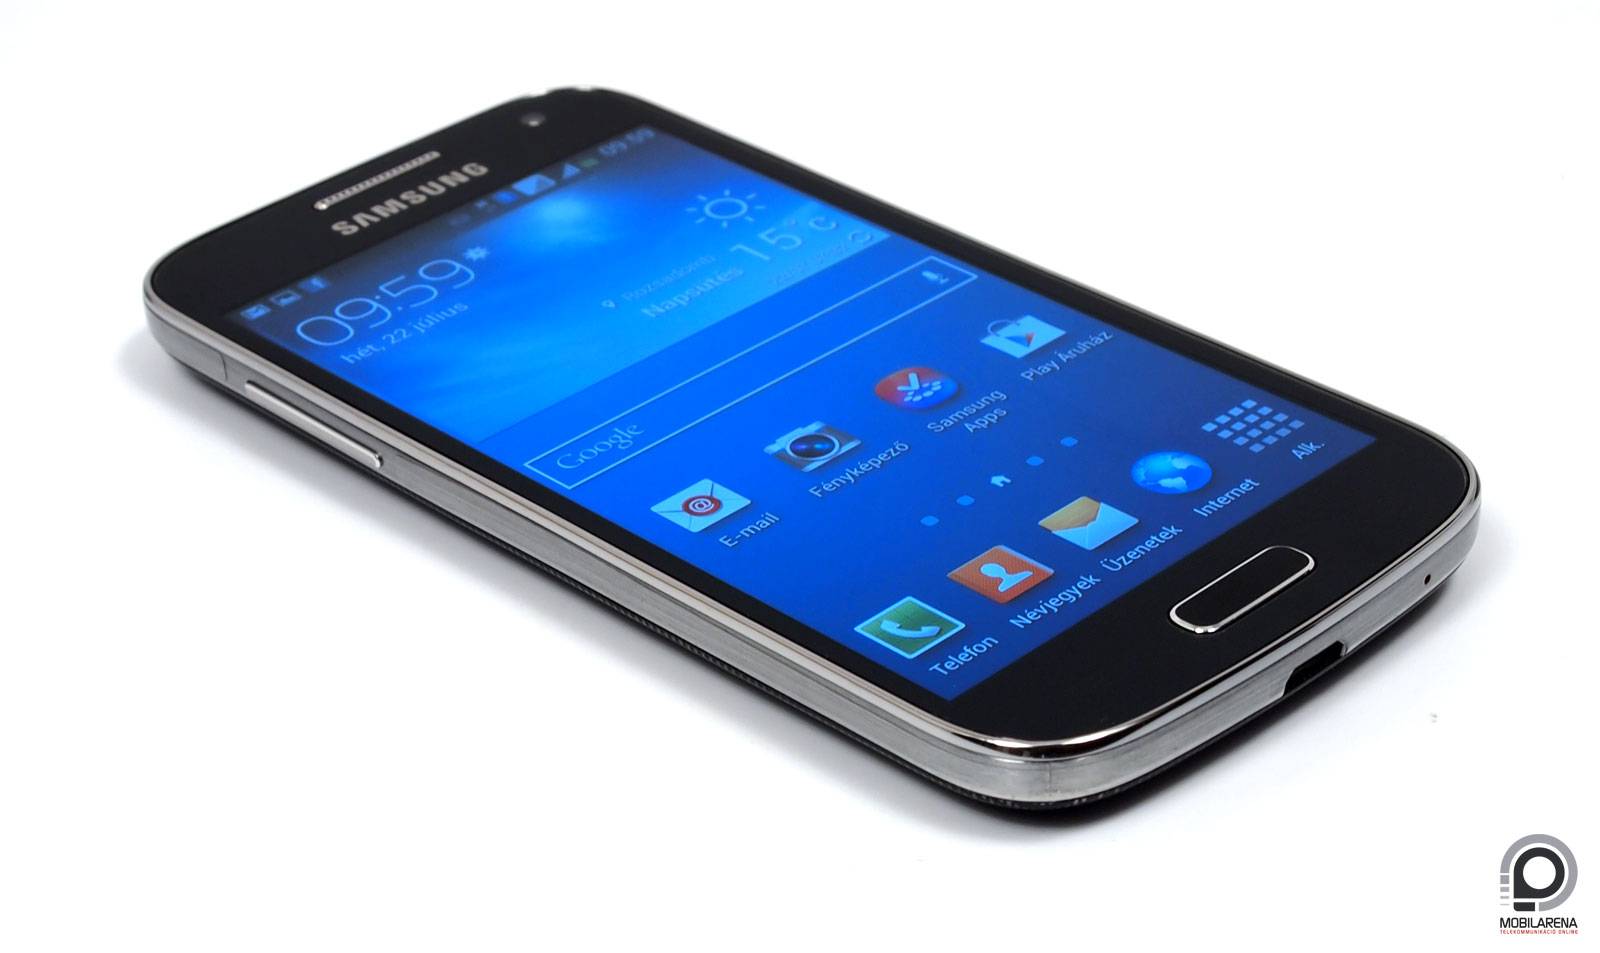 How to root samsung galaxy s4 mini gt i9192 - Your Galaxy S4 Mini Should Now Have Cm14 Cyanogenmod 14 Nougat 7 0 Rom Installed On Your Phone Go To Settings About Phone To Verify